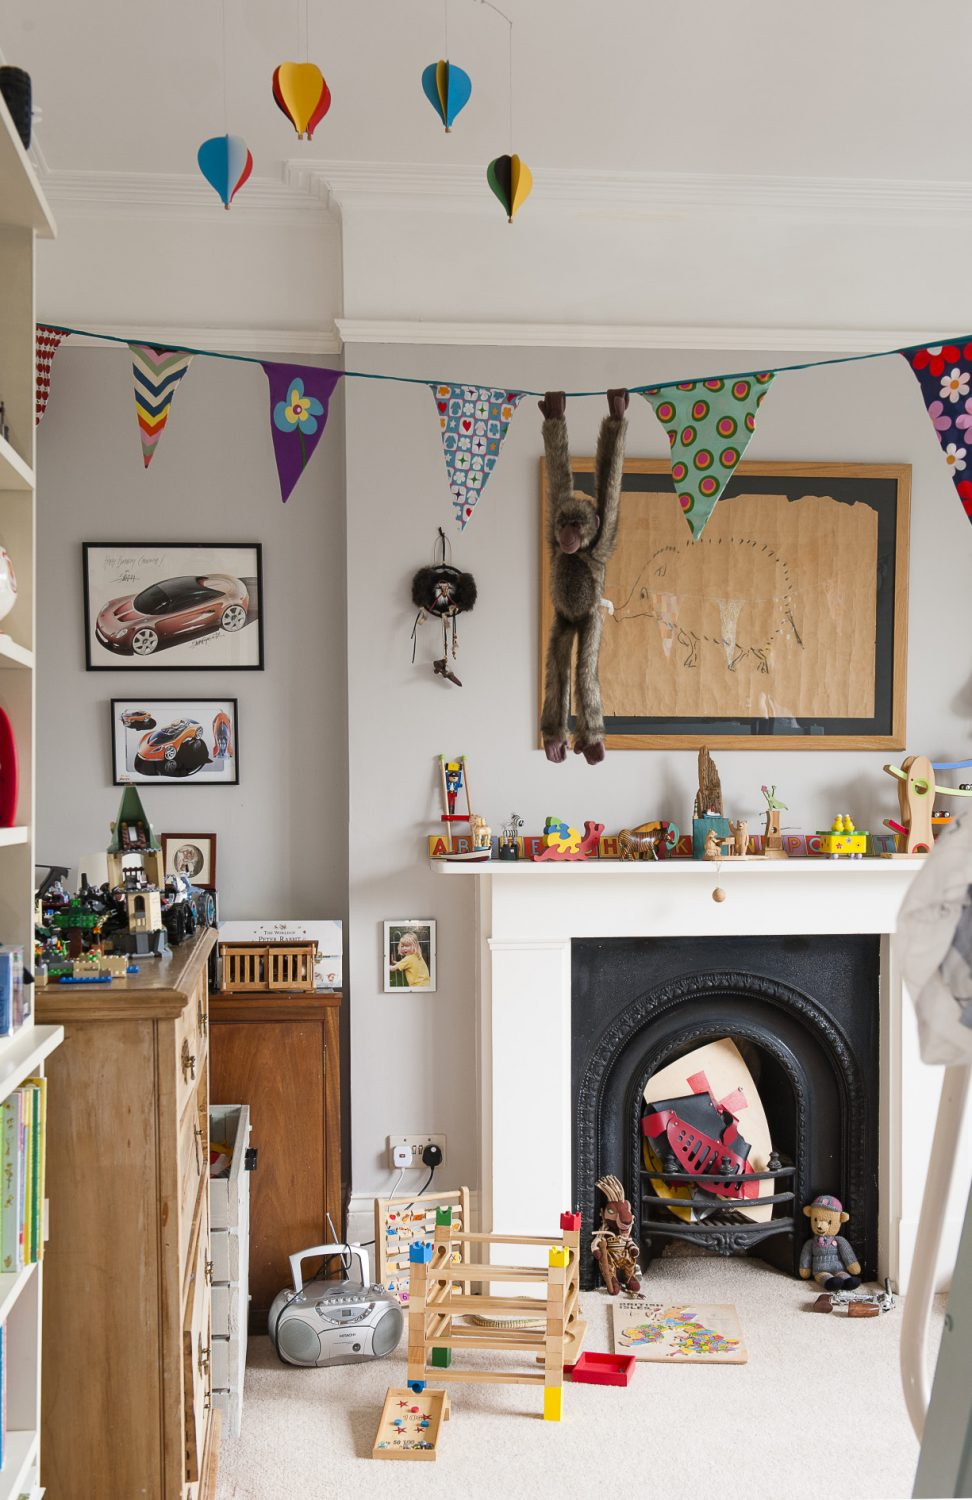 The couple's children's rooms were designed by them and reflect their personalities